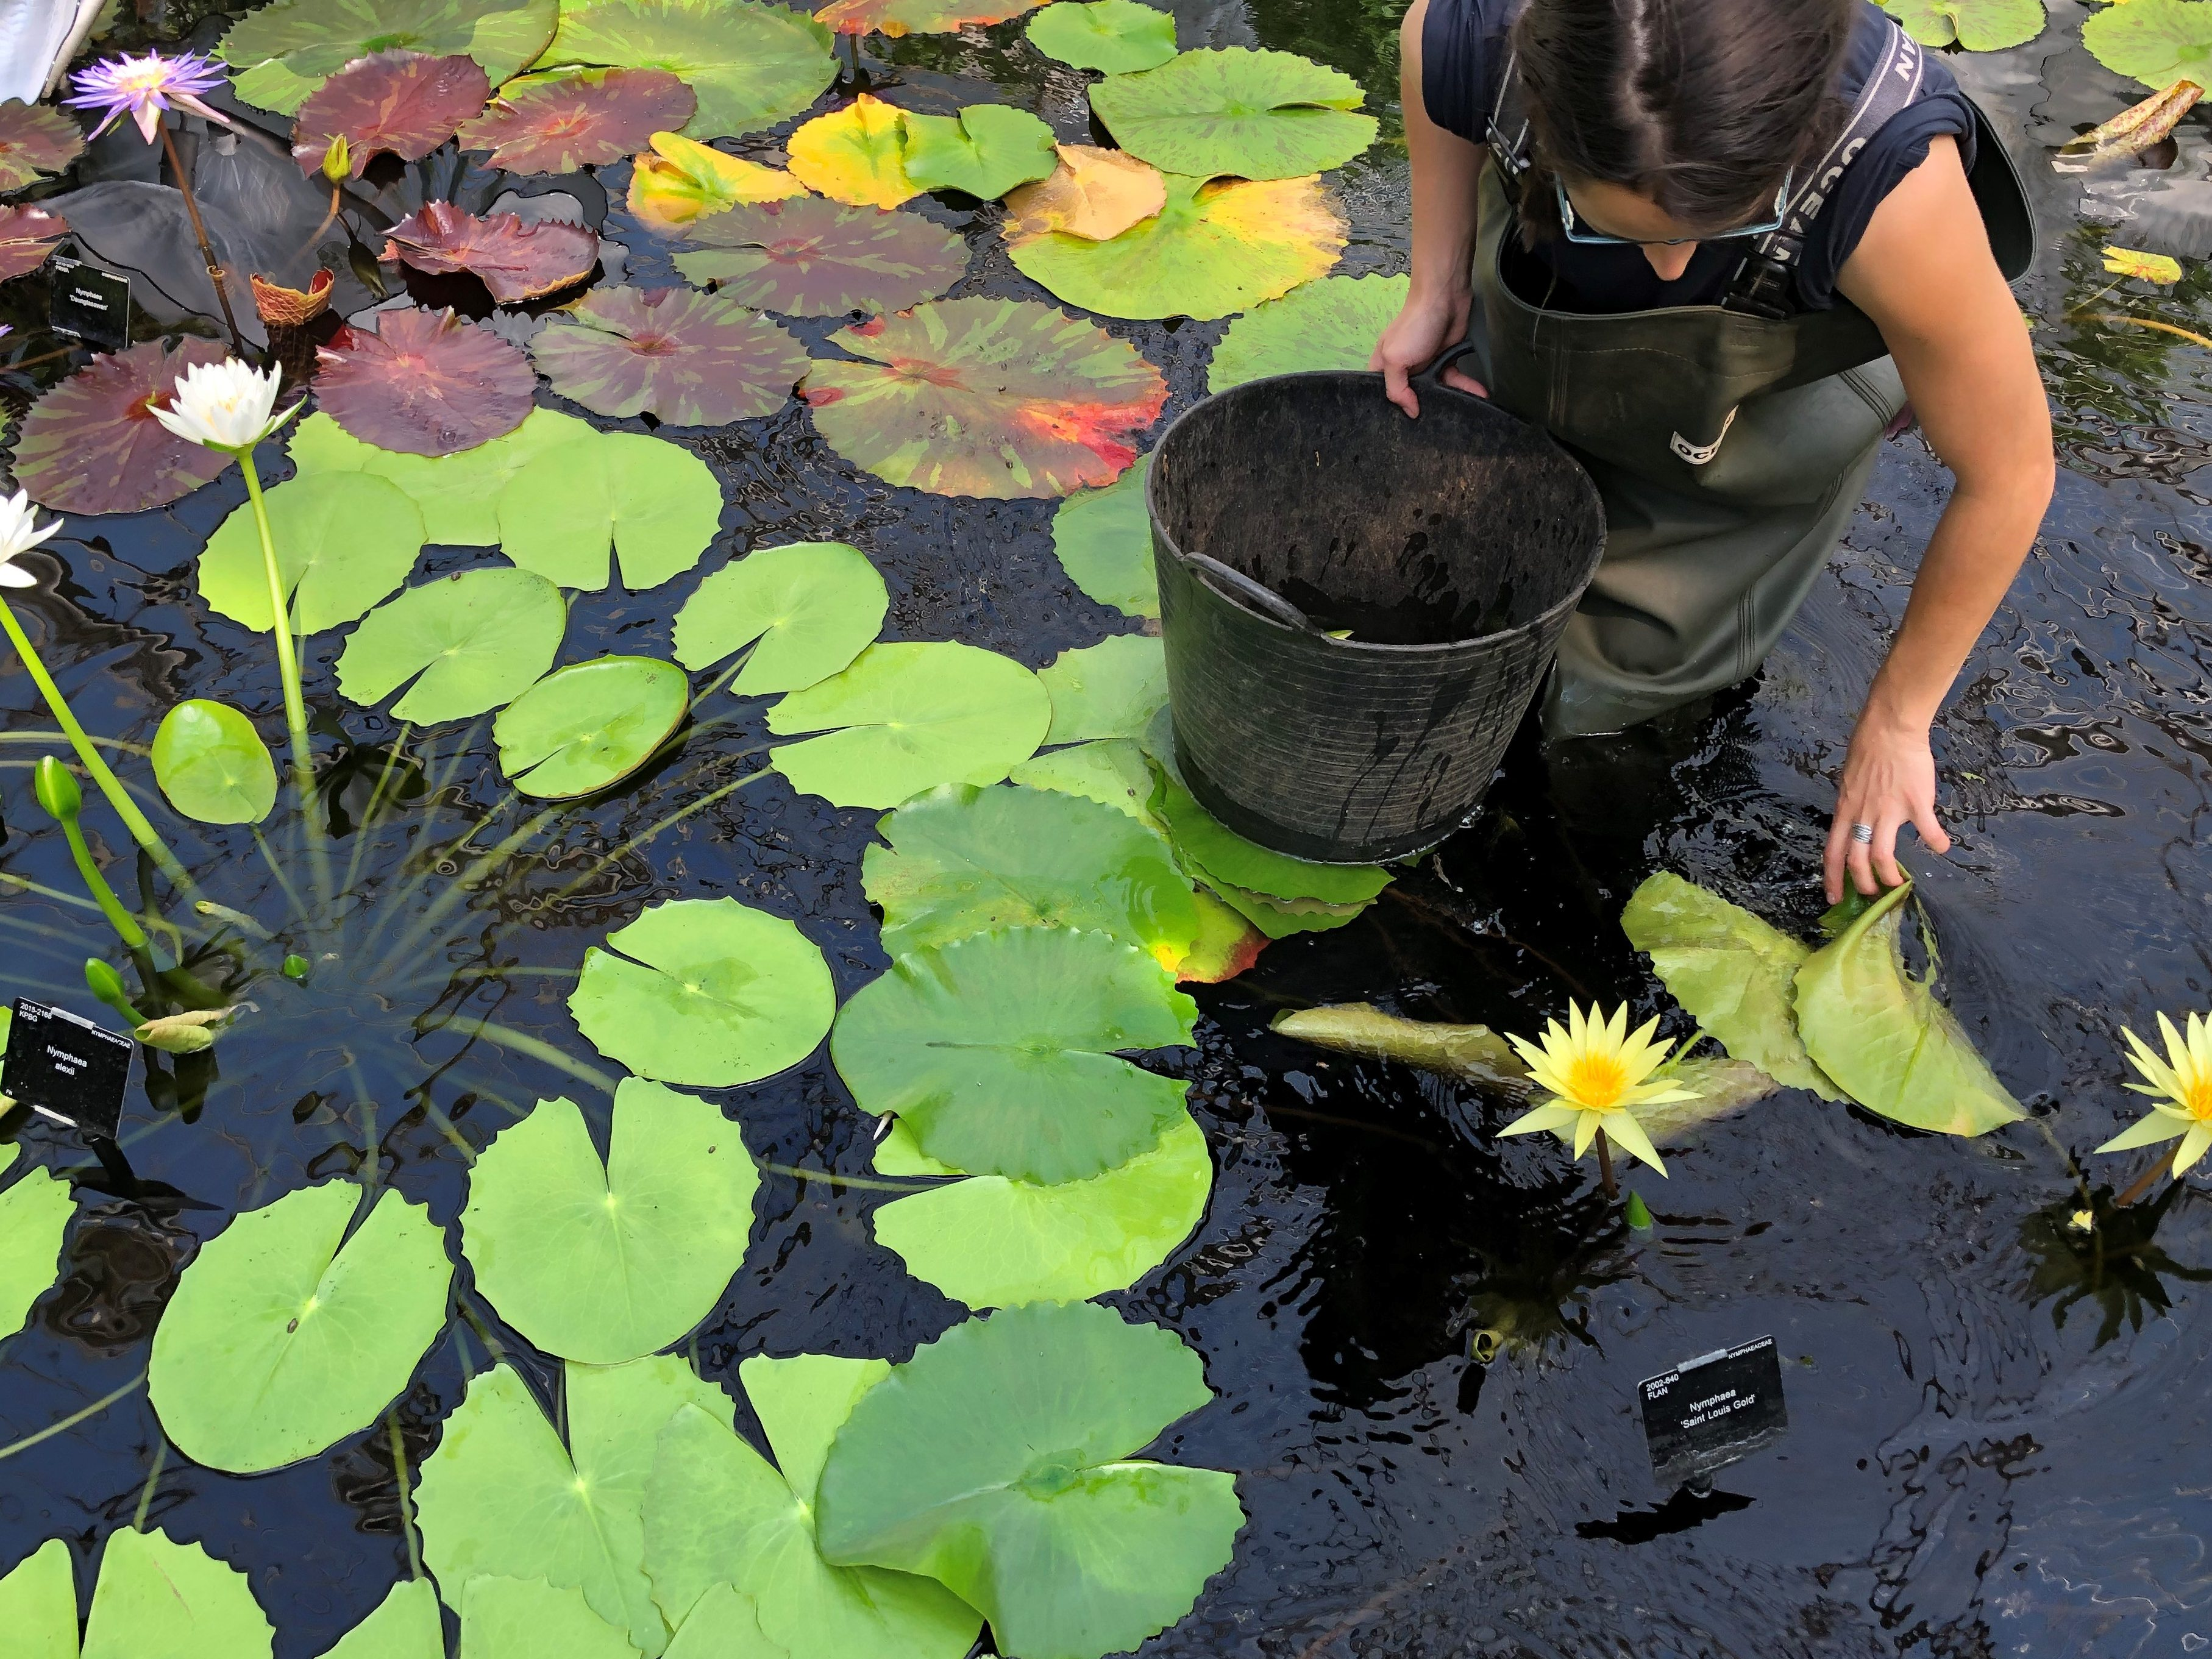 Solène Dequiret working in the Waterlily House pond